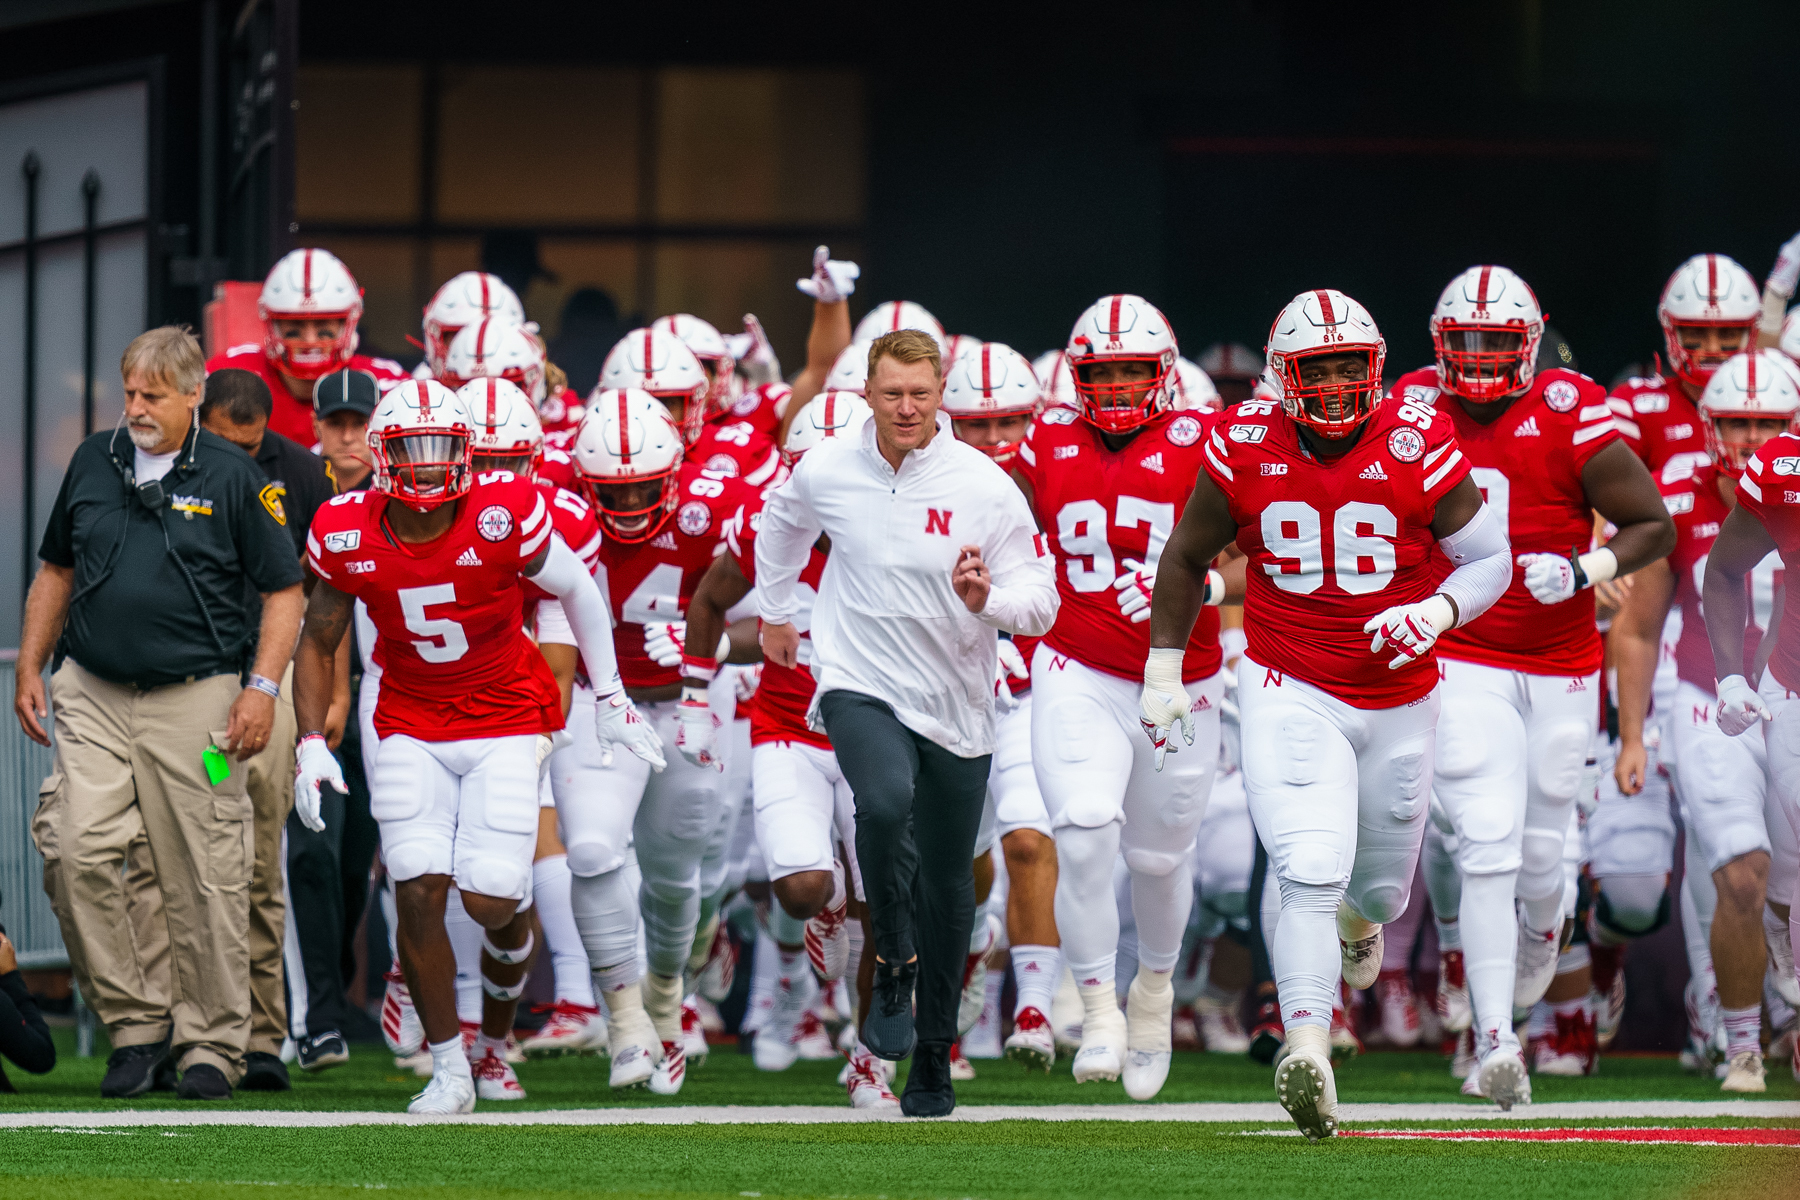 Scott Frost leads the team out prior to Nebraska's 35-21 win over South Alabama at Memorial Stadium in Lincoln, Nebraska on Aug. 31, 2019.   © Aaron Babcock